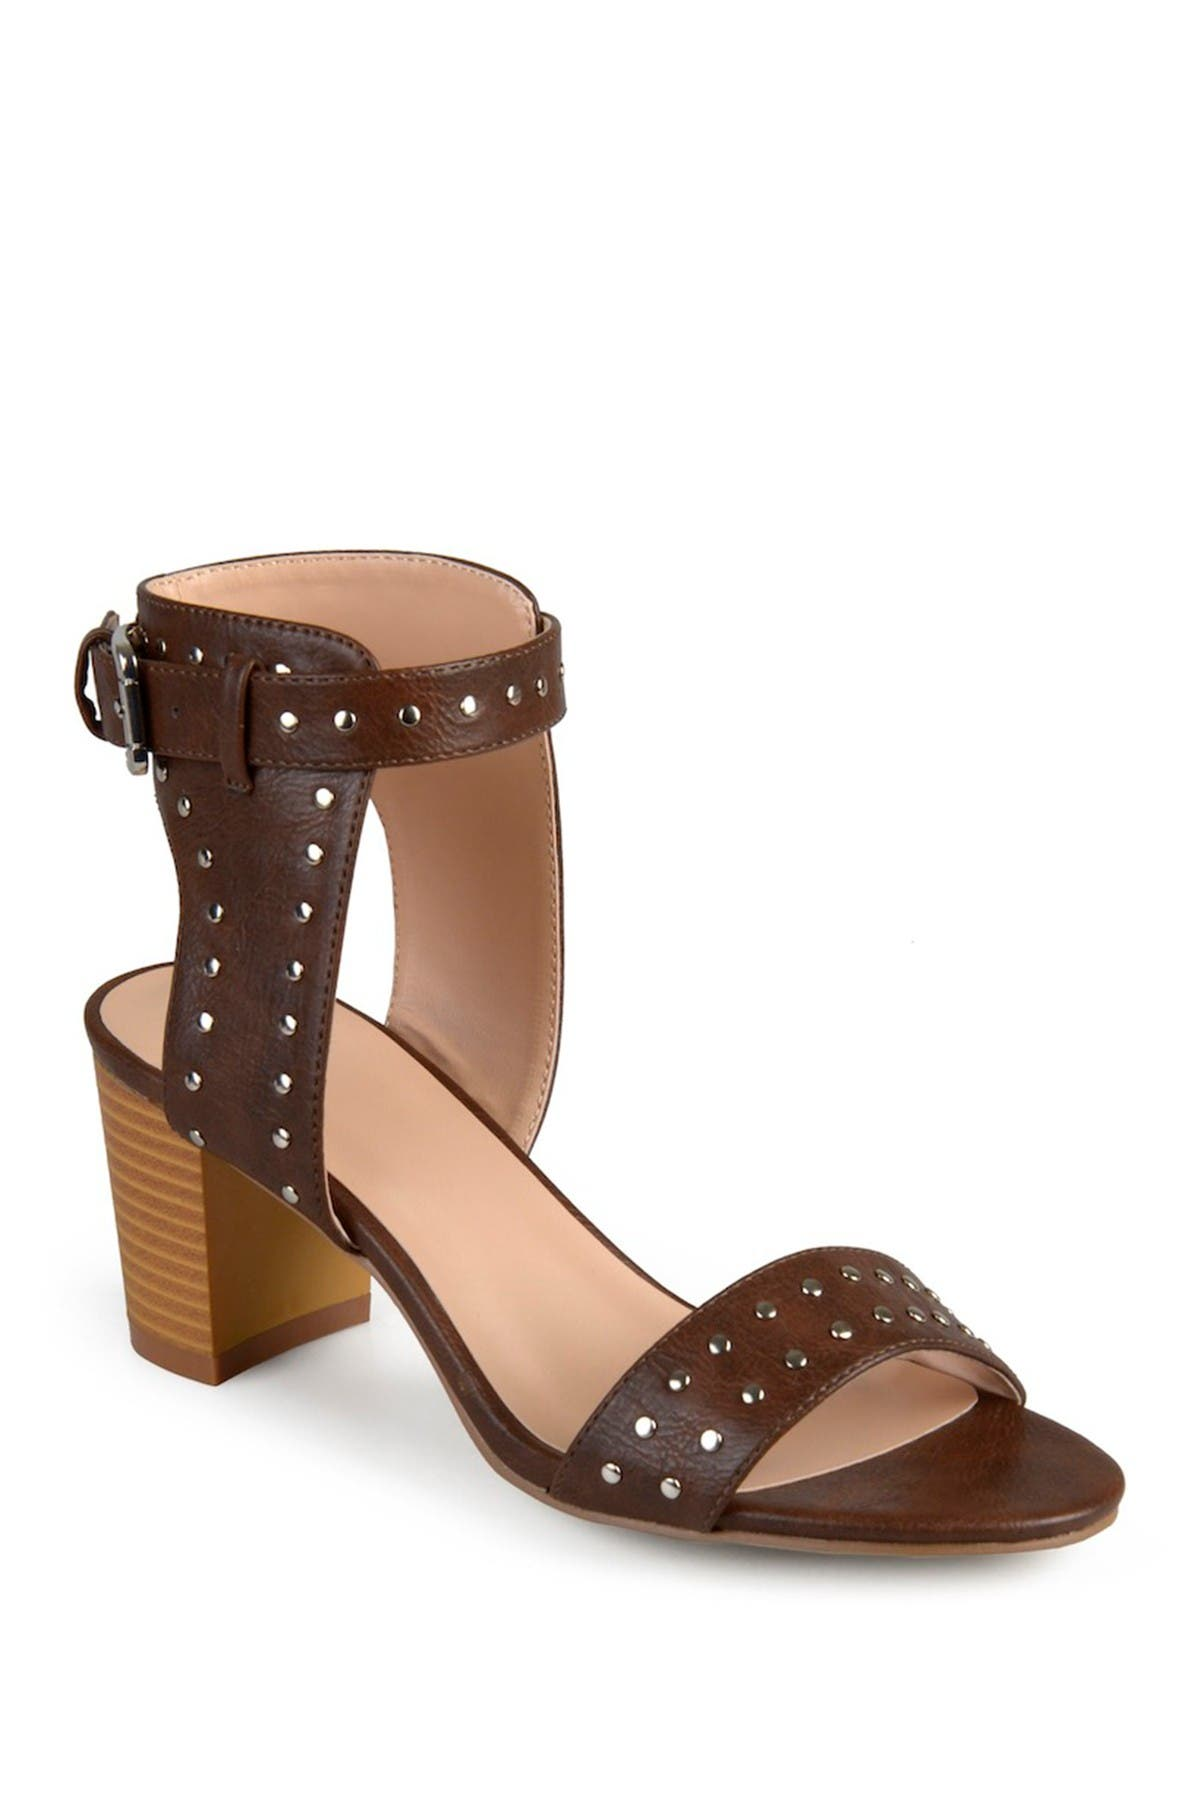 Image of JOURNEE Collection Mabel Sandal